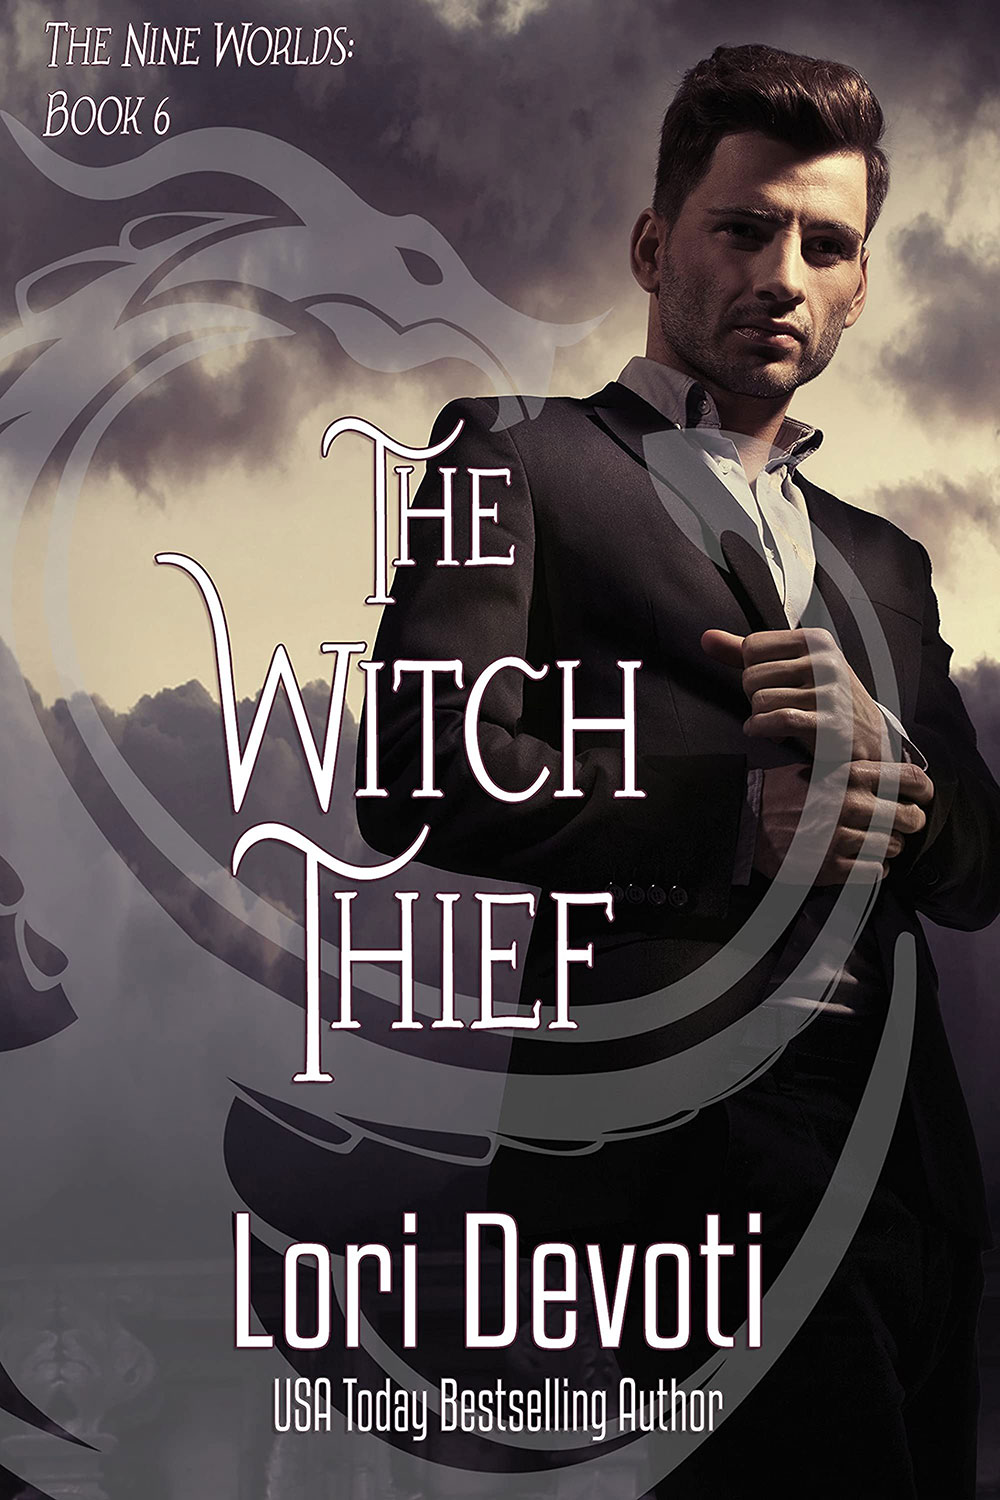 The Witch Thief